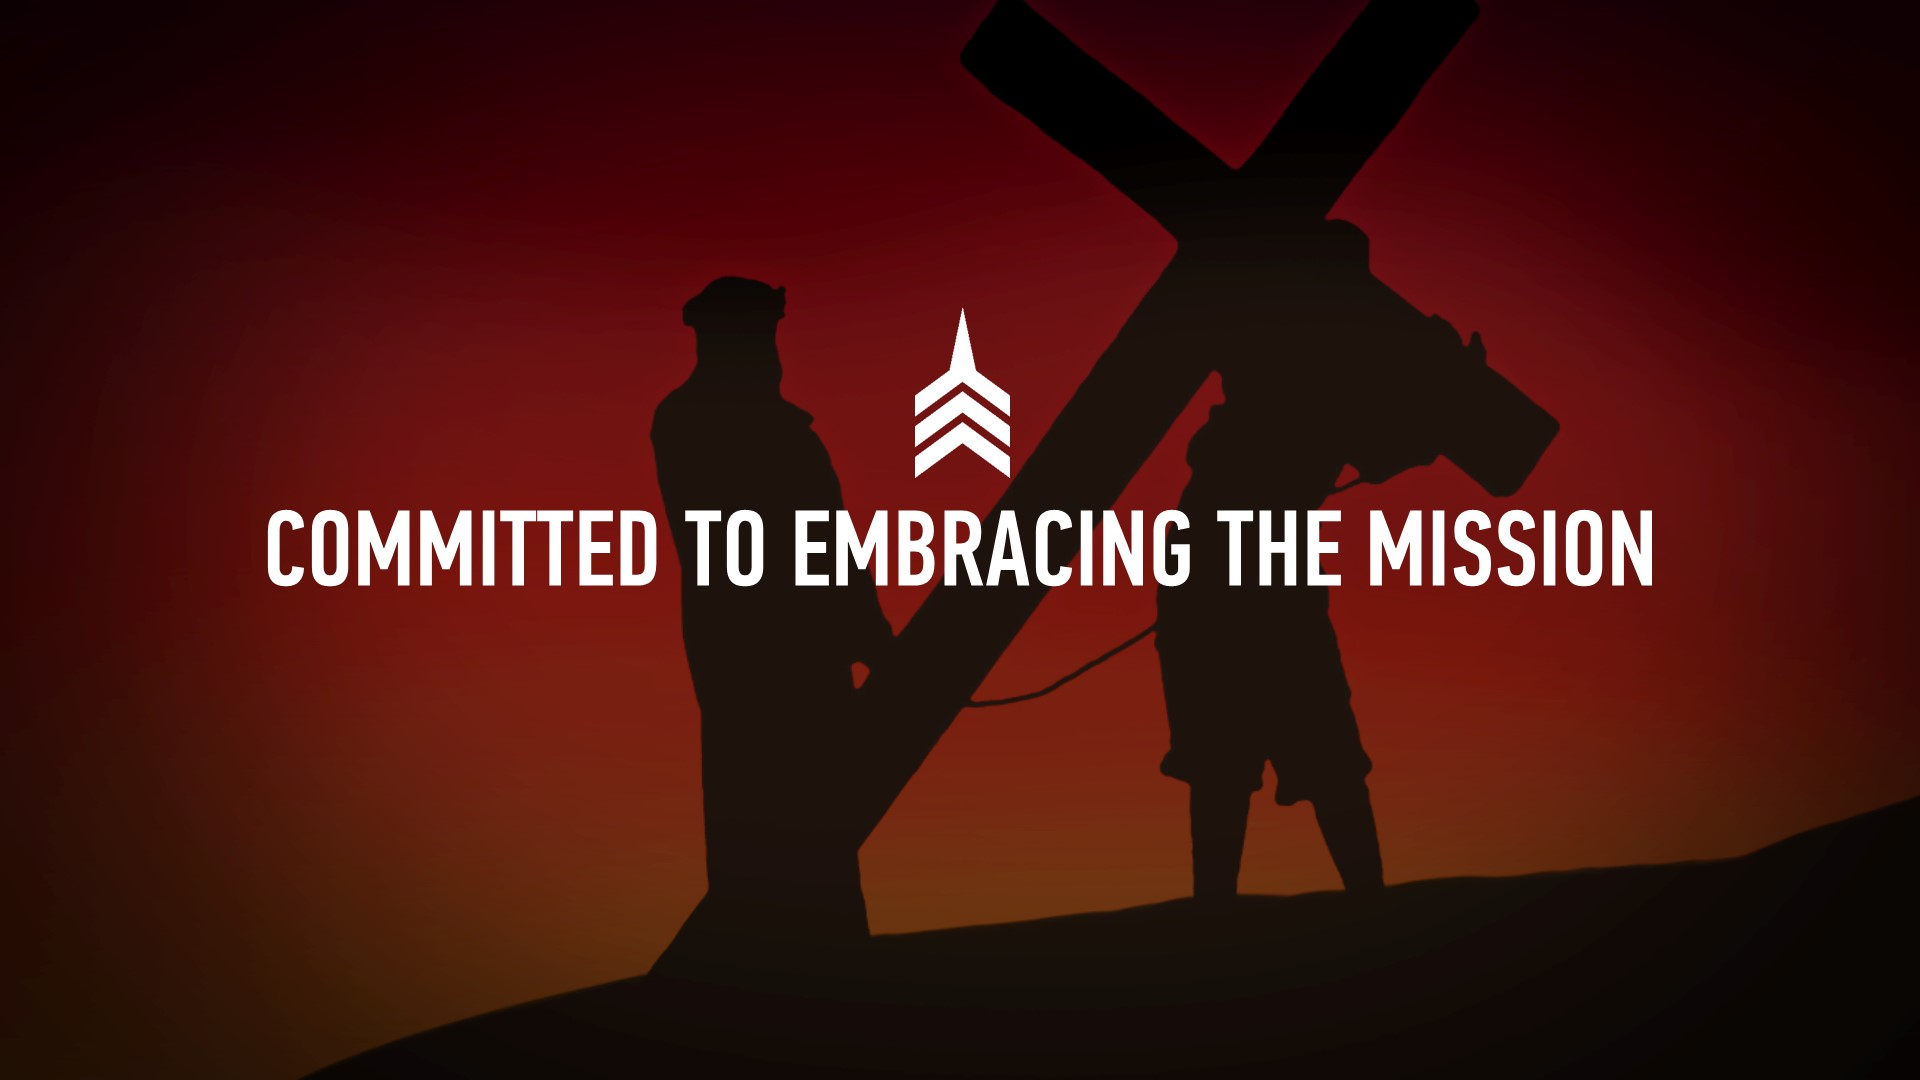 20190428 COMMITTED TO EMBRACING THE MISSION.JPG